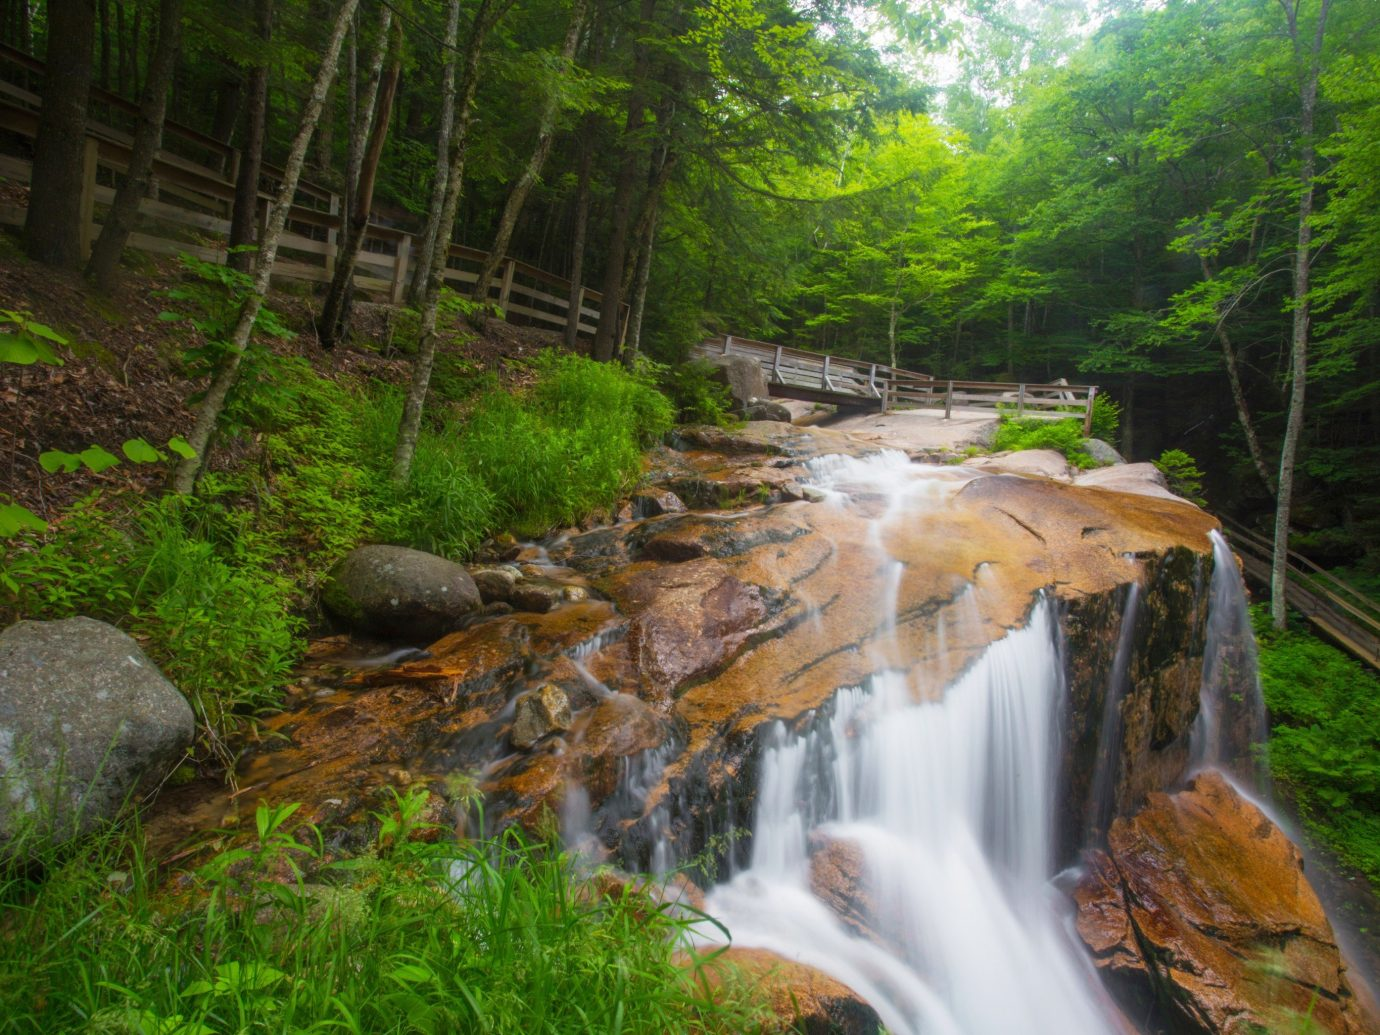 Trip Ideas tree Nature grass outdoor water Waterfall habitat creek body of water stream watercourse River water feature Forest woodland rainforest autumn Jungle wooded surrounded